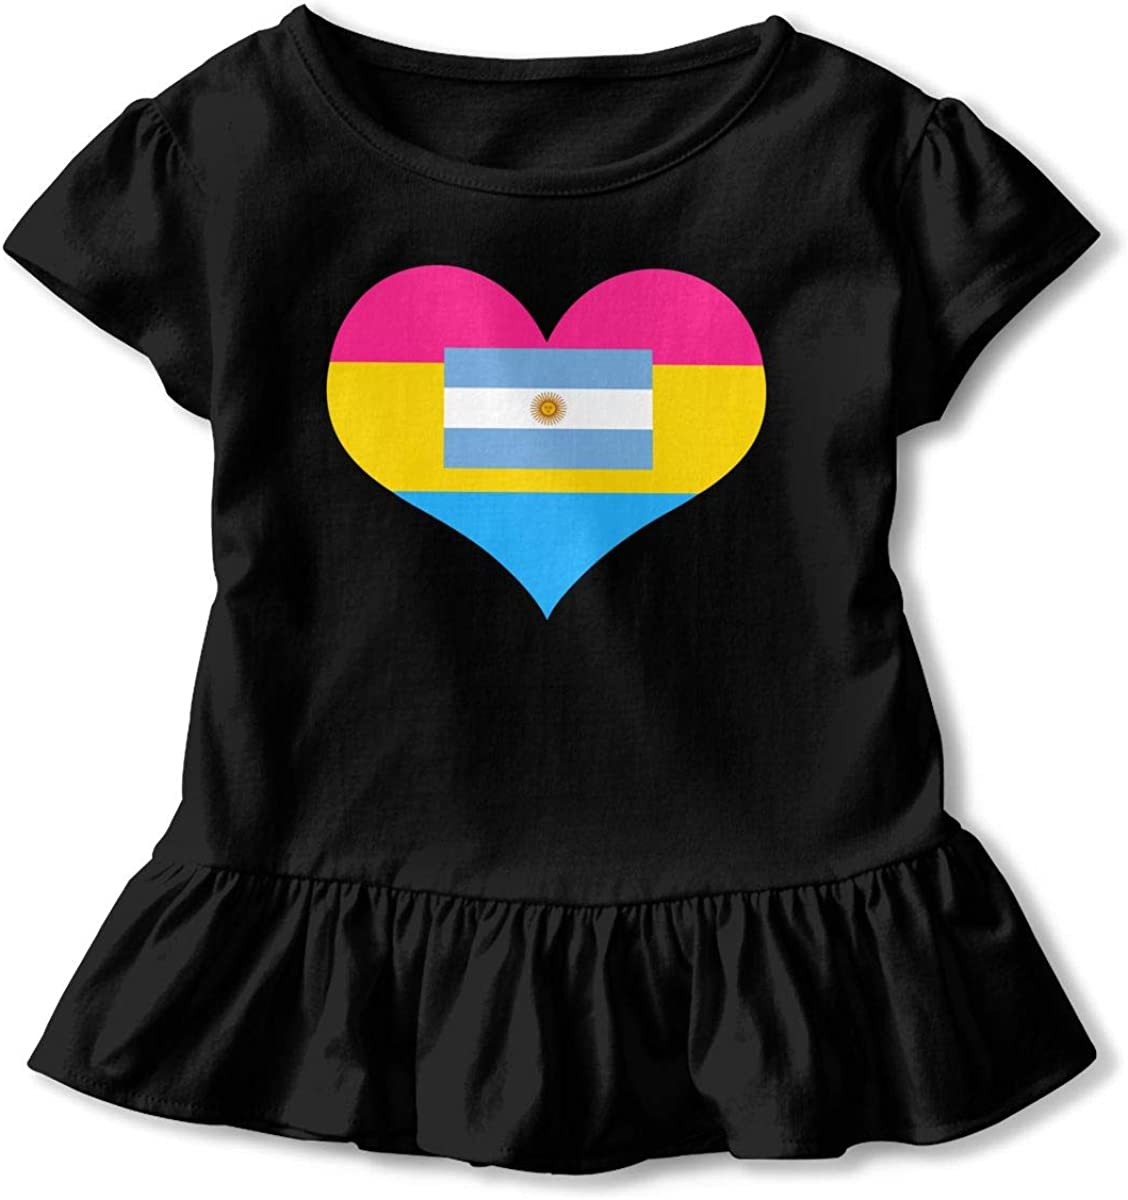 GNKTGBO2O Toddler Girls Pansexual Heart Argentina Flag 100/% Cotton T Shirts Short Sleeve Ruffle Tee Basic Tops